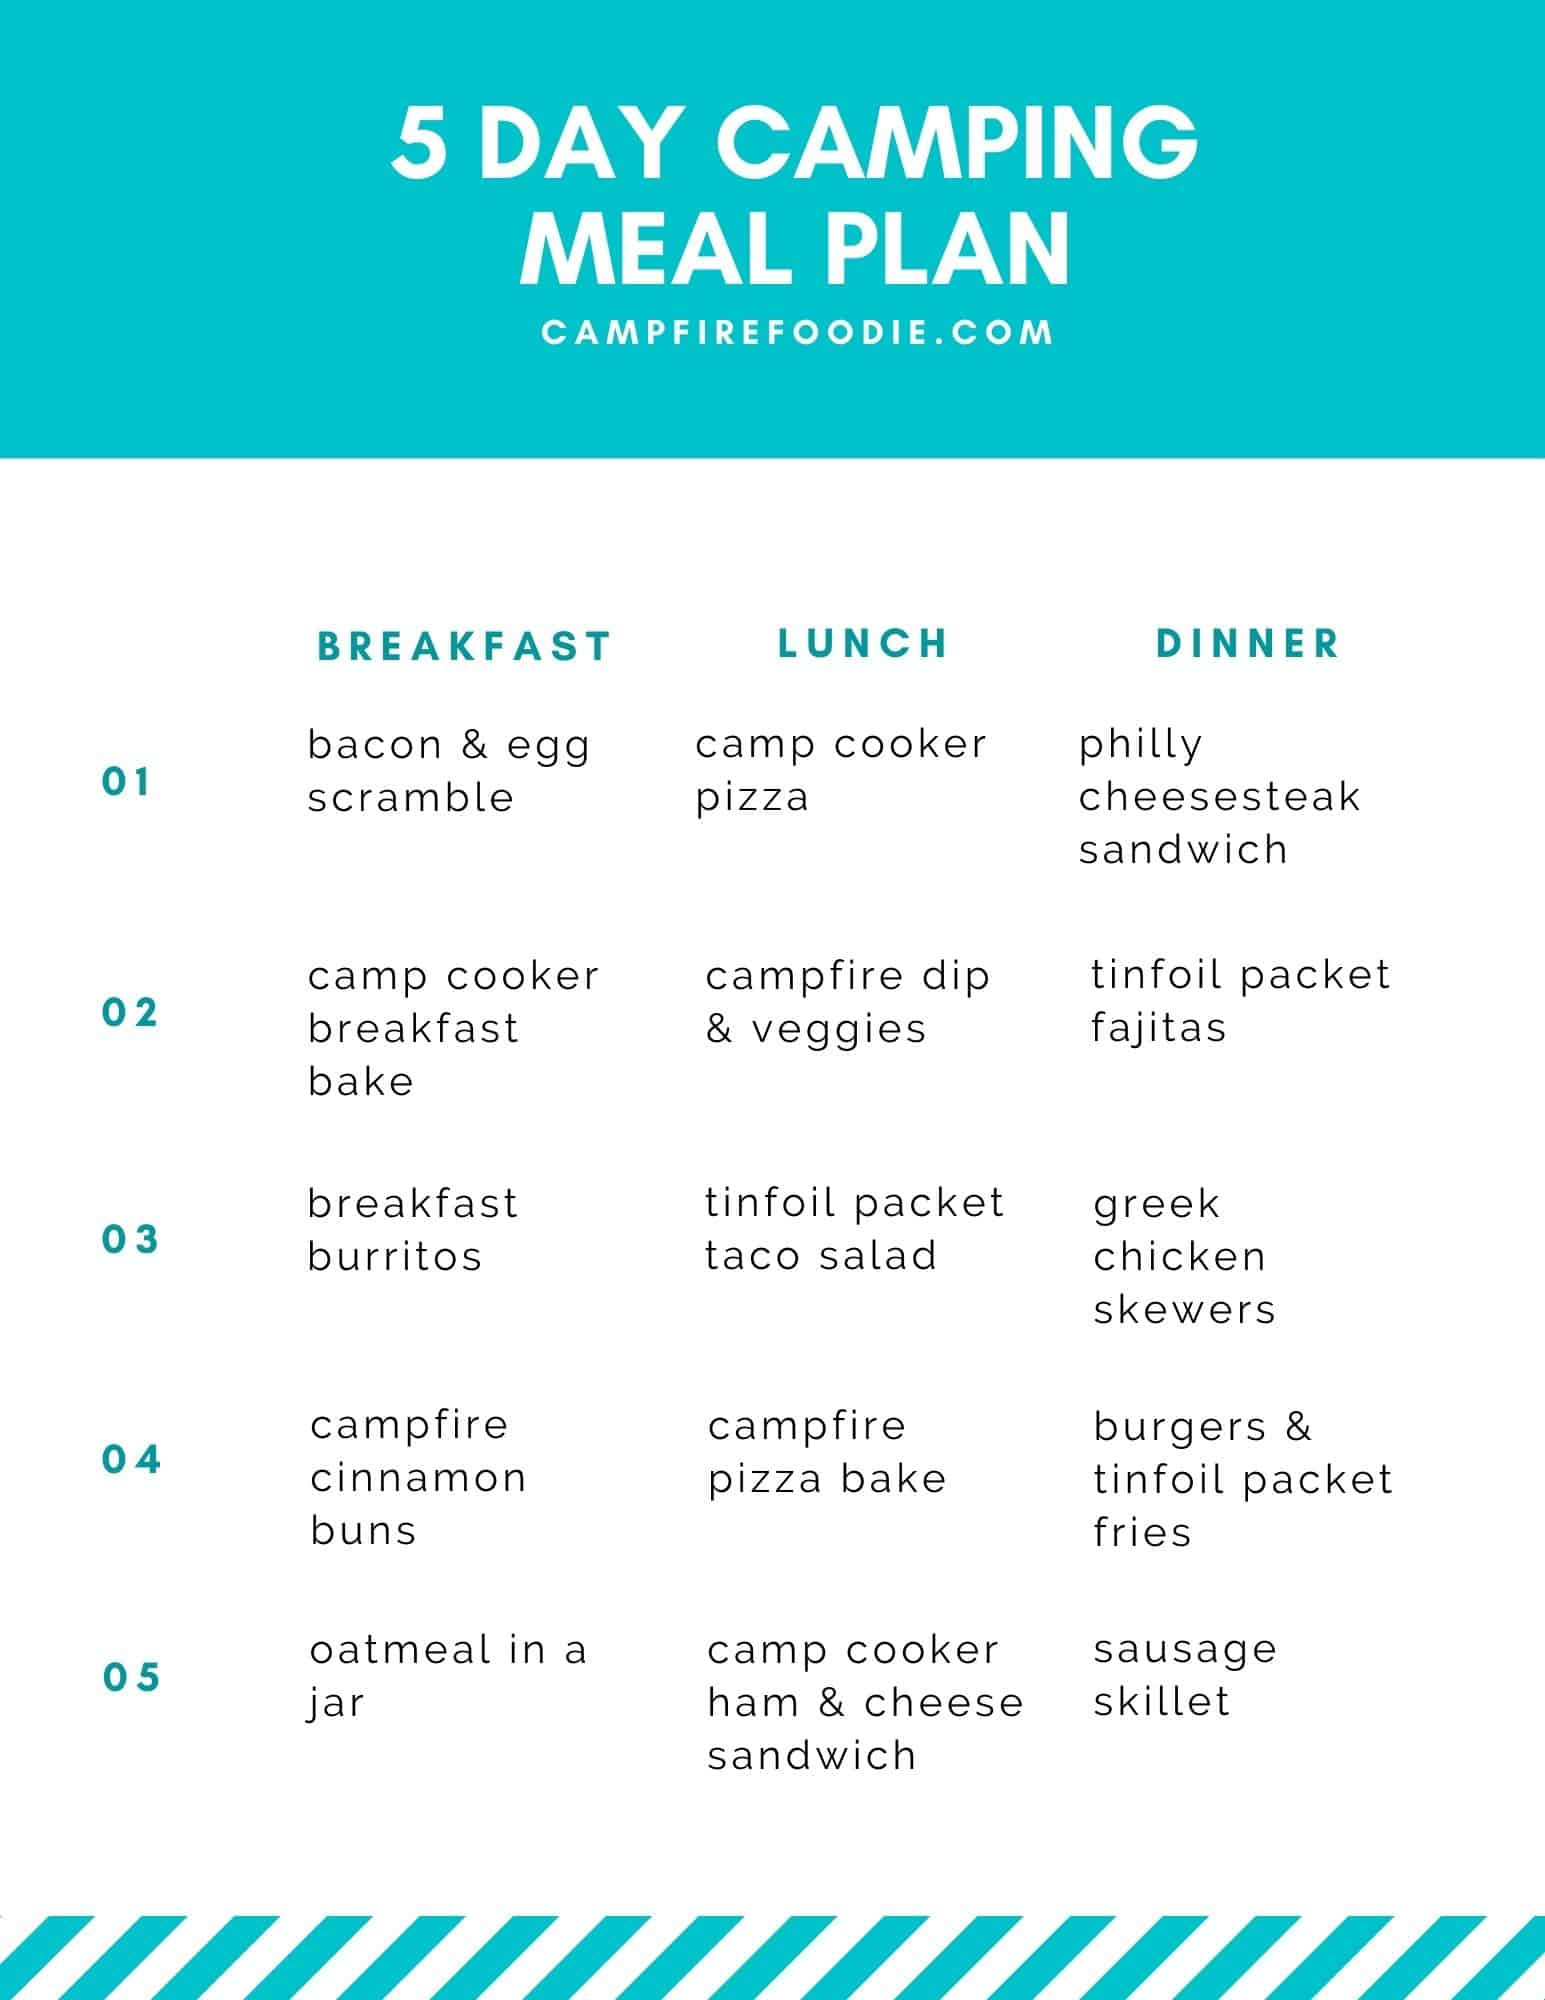 5 Day Camping Meal Plan